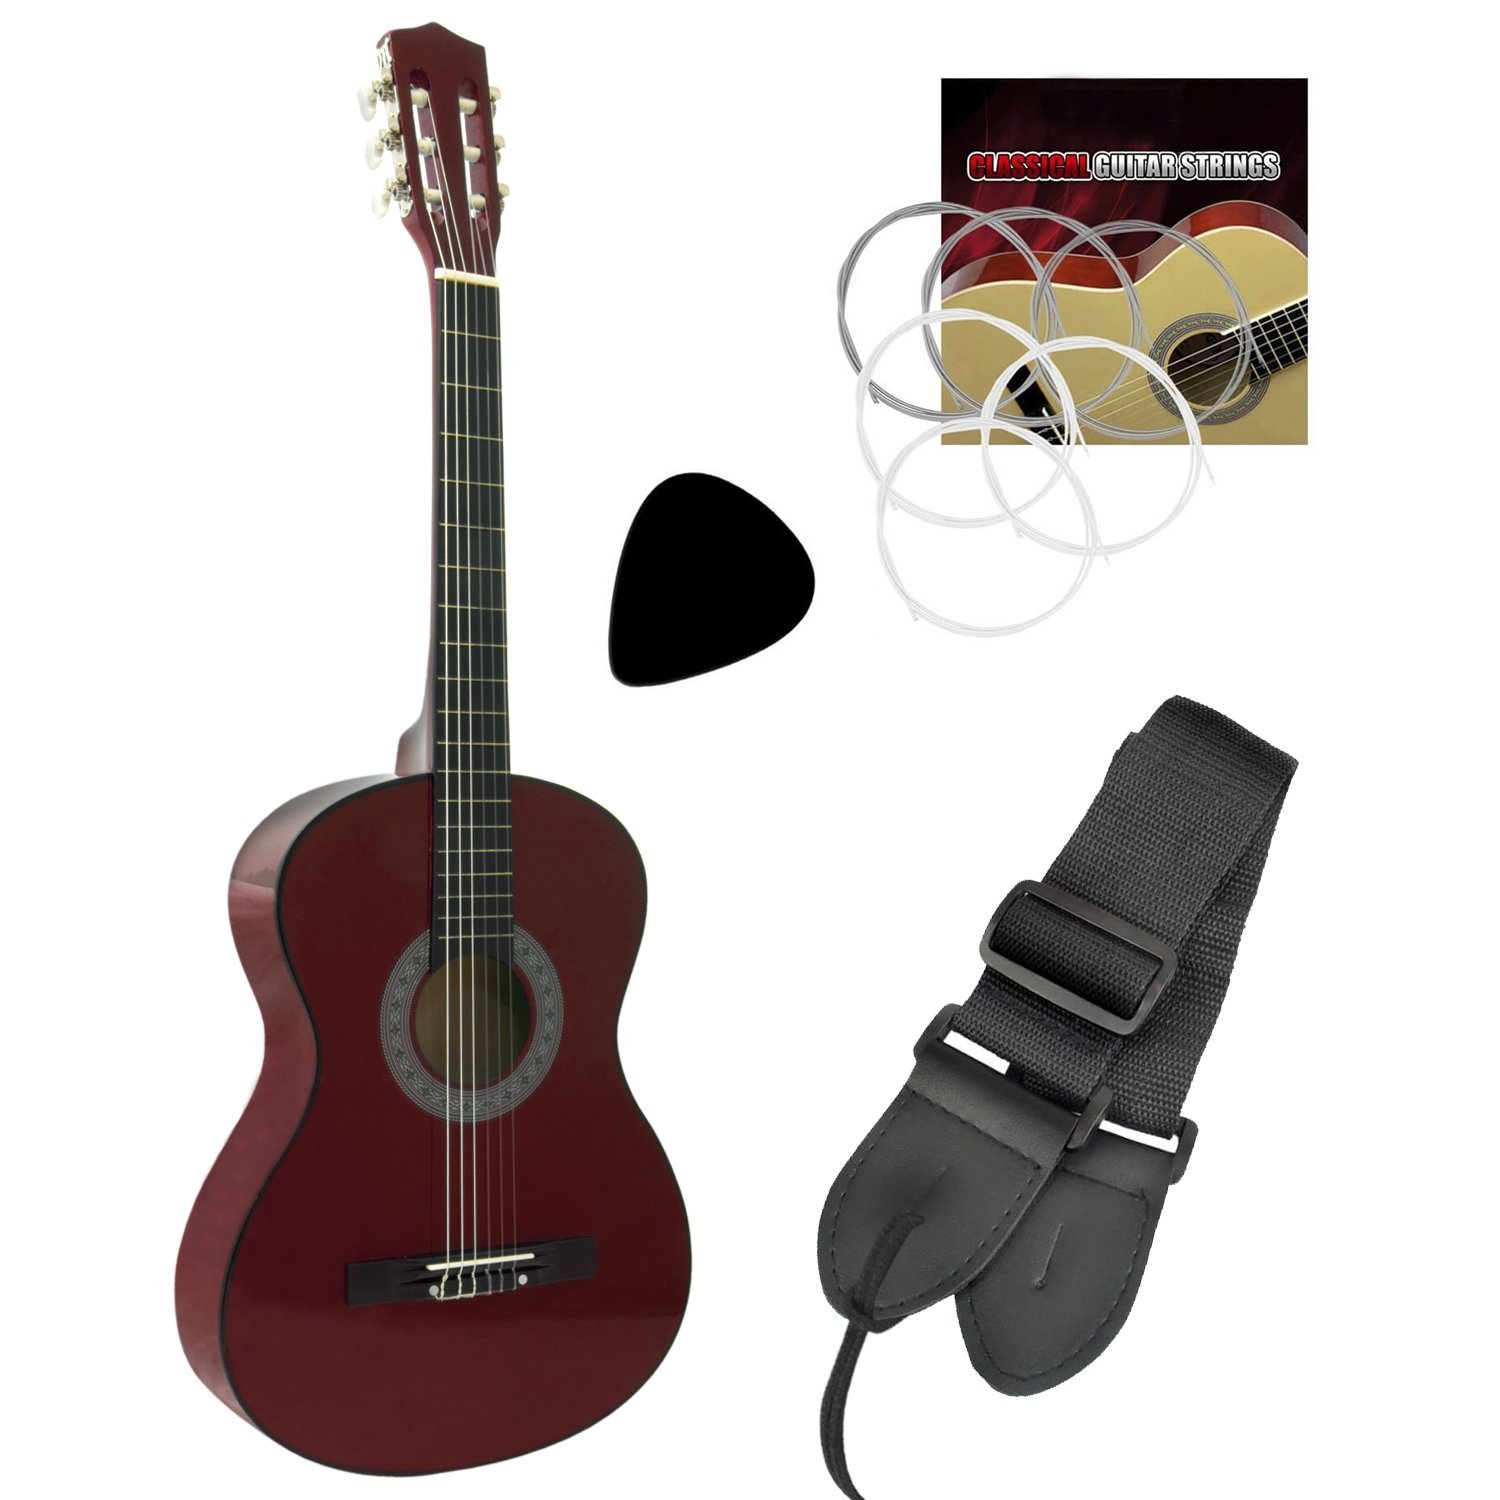 Tiger Beginner 1/2 Size Classical Guitar Pack - Red Guitar Tiger Music CLG6-RD